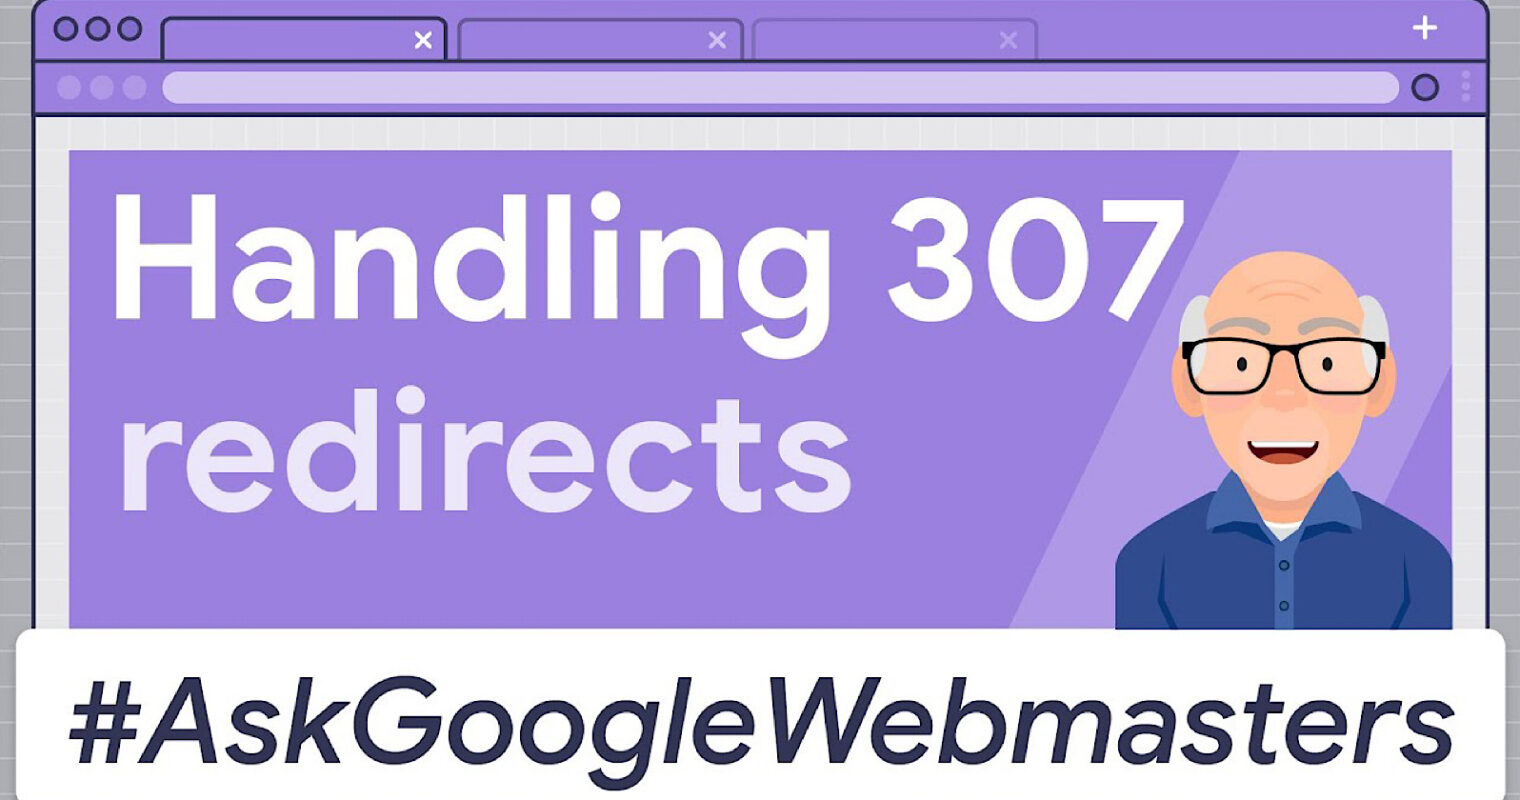 Google on 307/HSTS Redirects (HTTP to HTTPS)